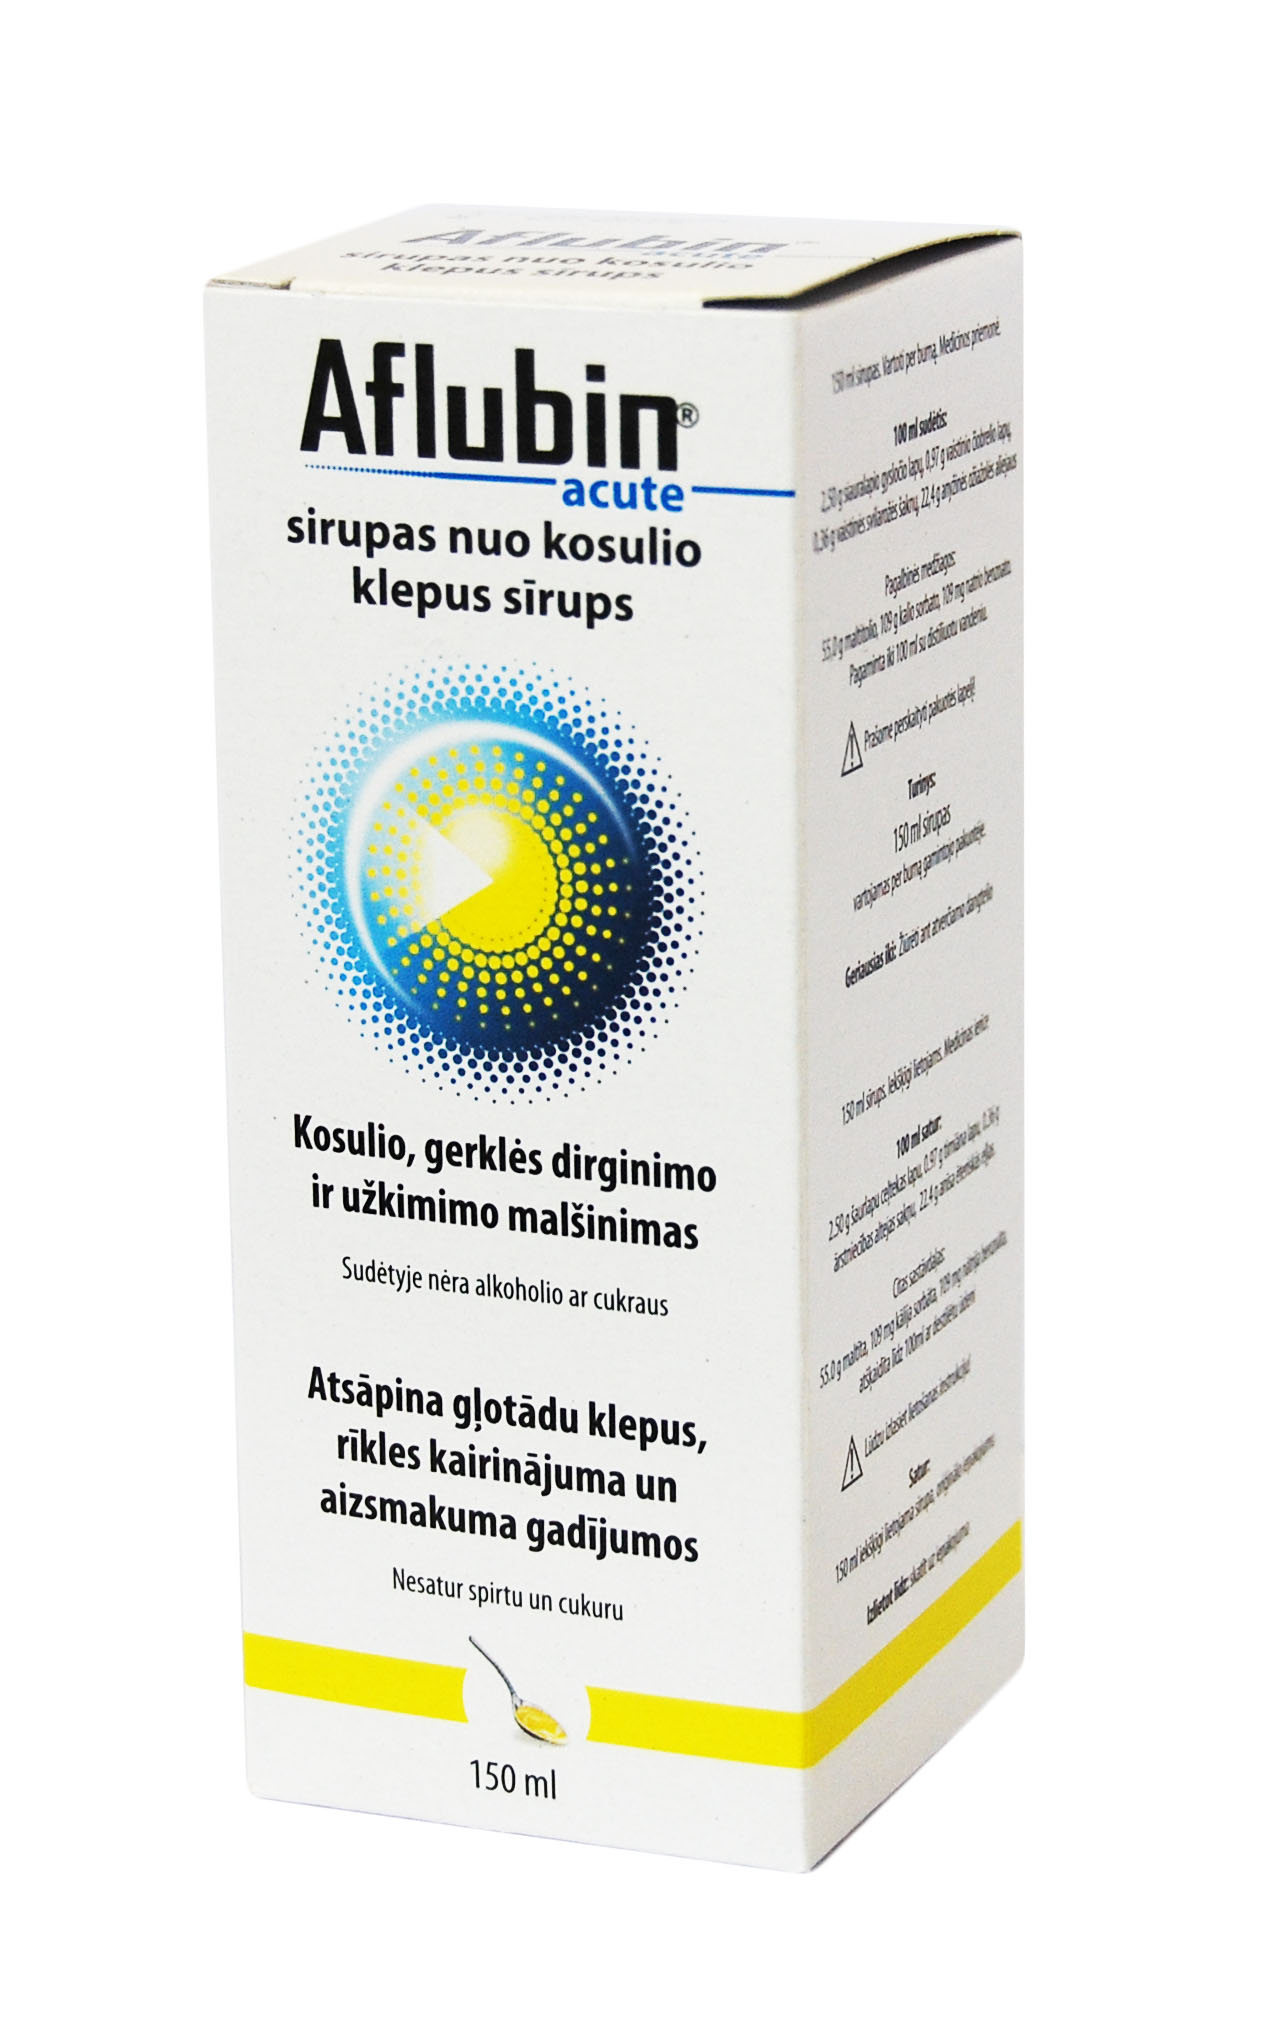 How to take Aflubin